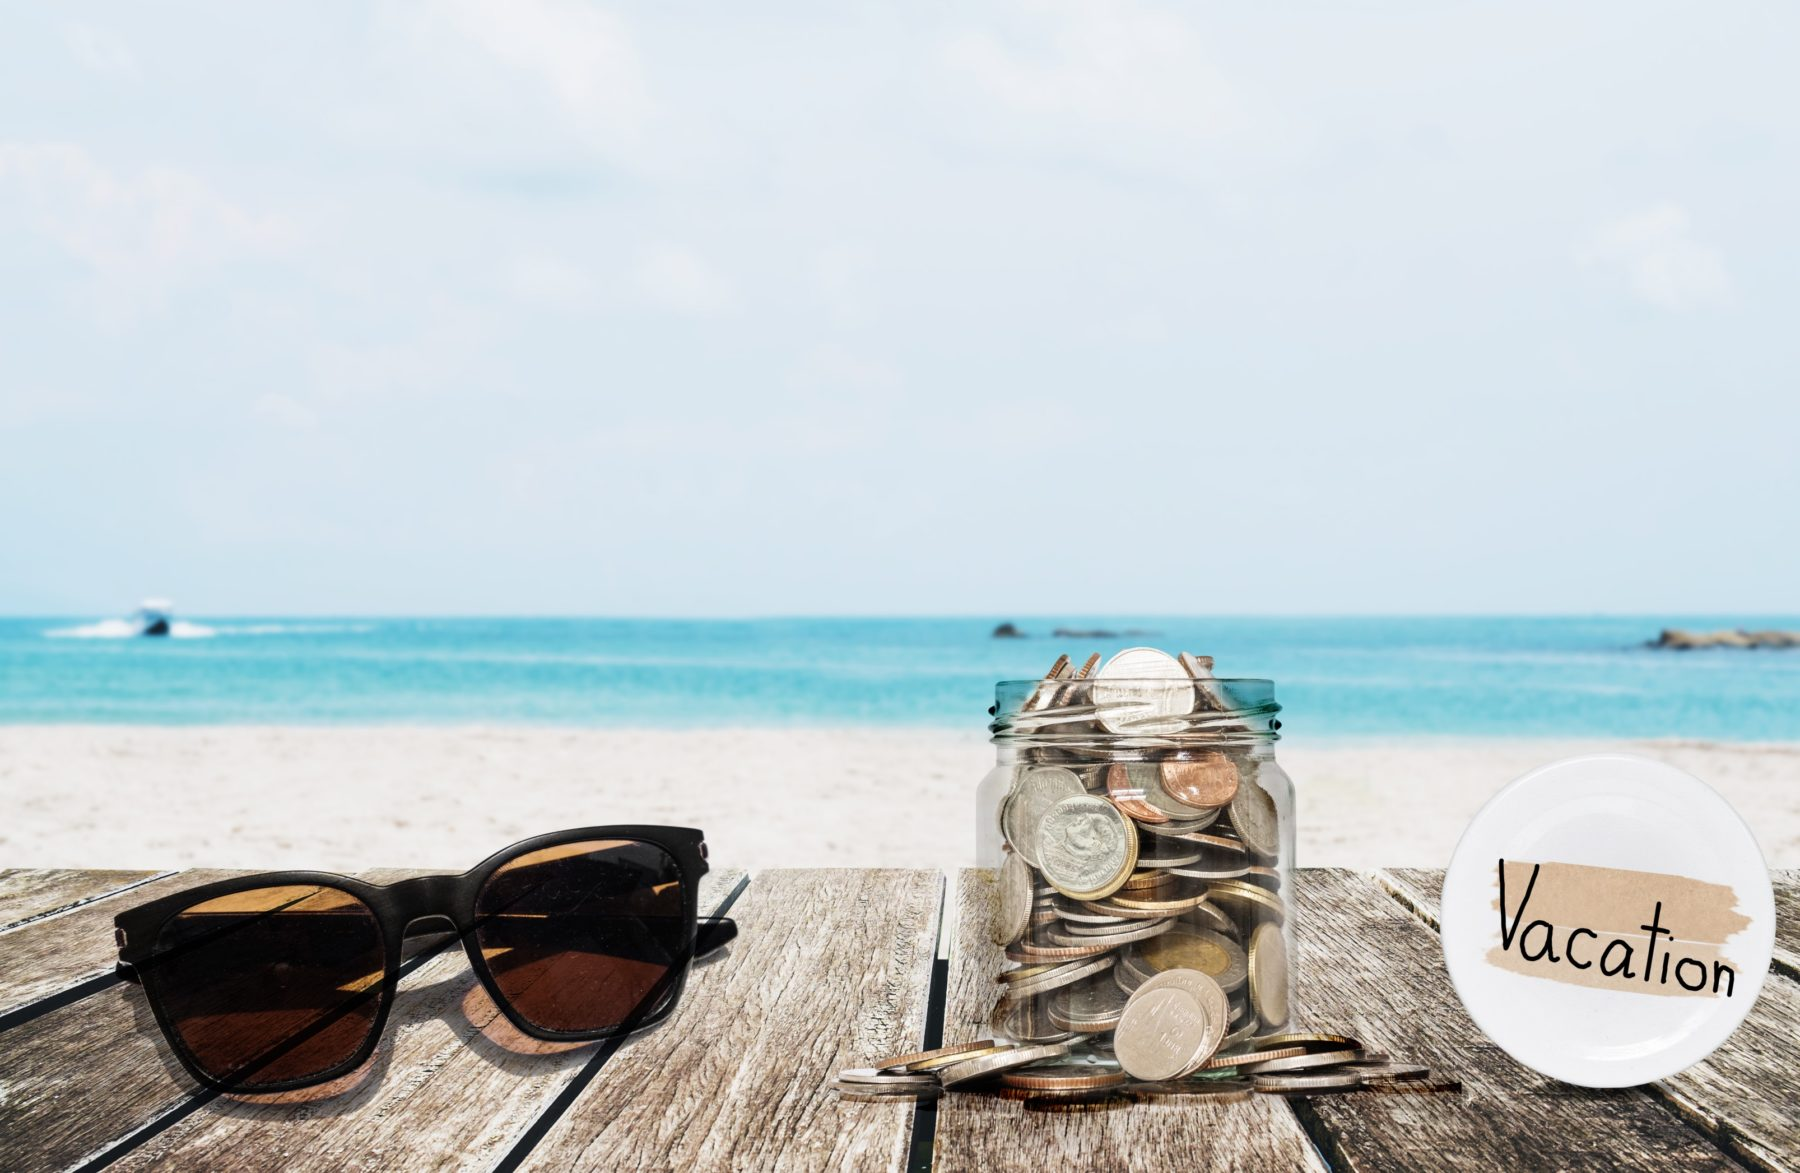 The Vacation of Your Dreams